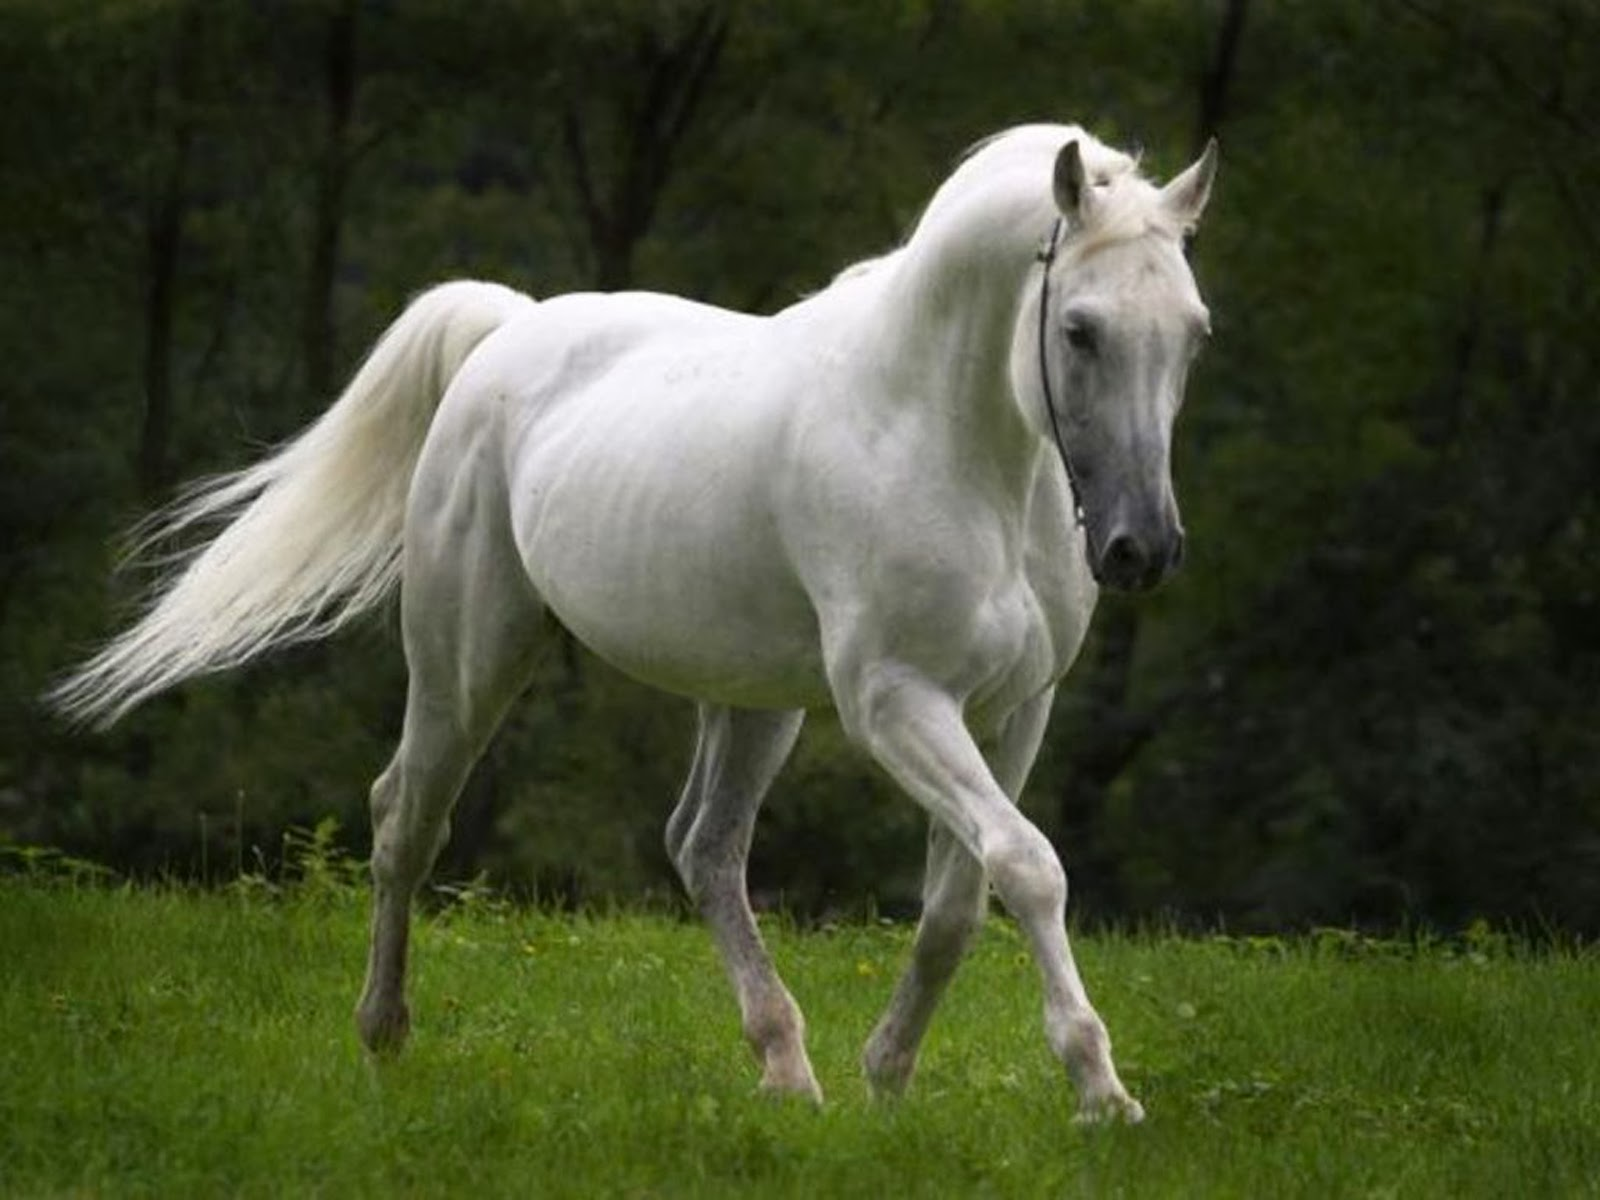 Wildlife hd wallpapers beautiful horses hd wallpapers 2014 for Wallpaper mare hd